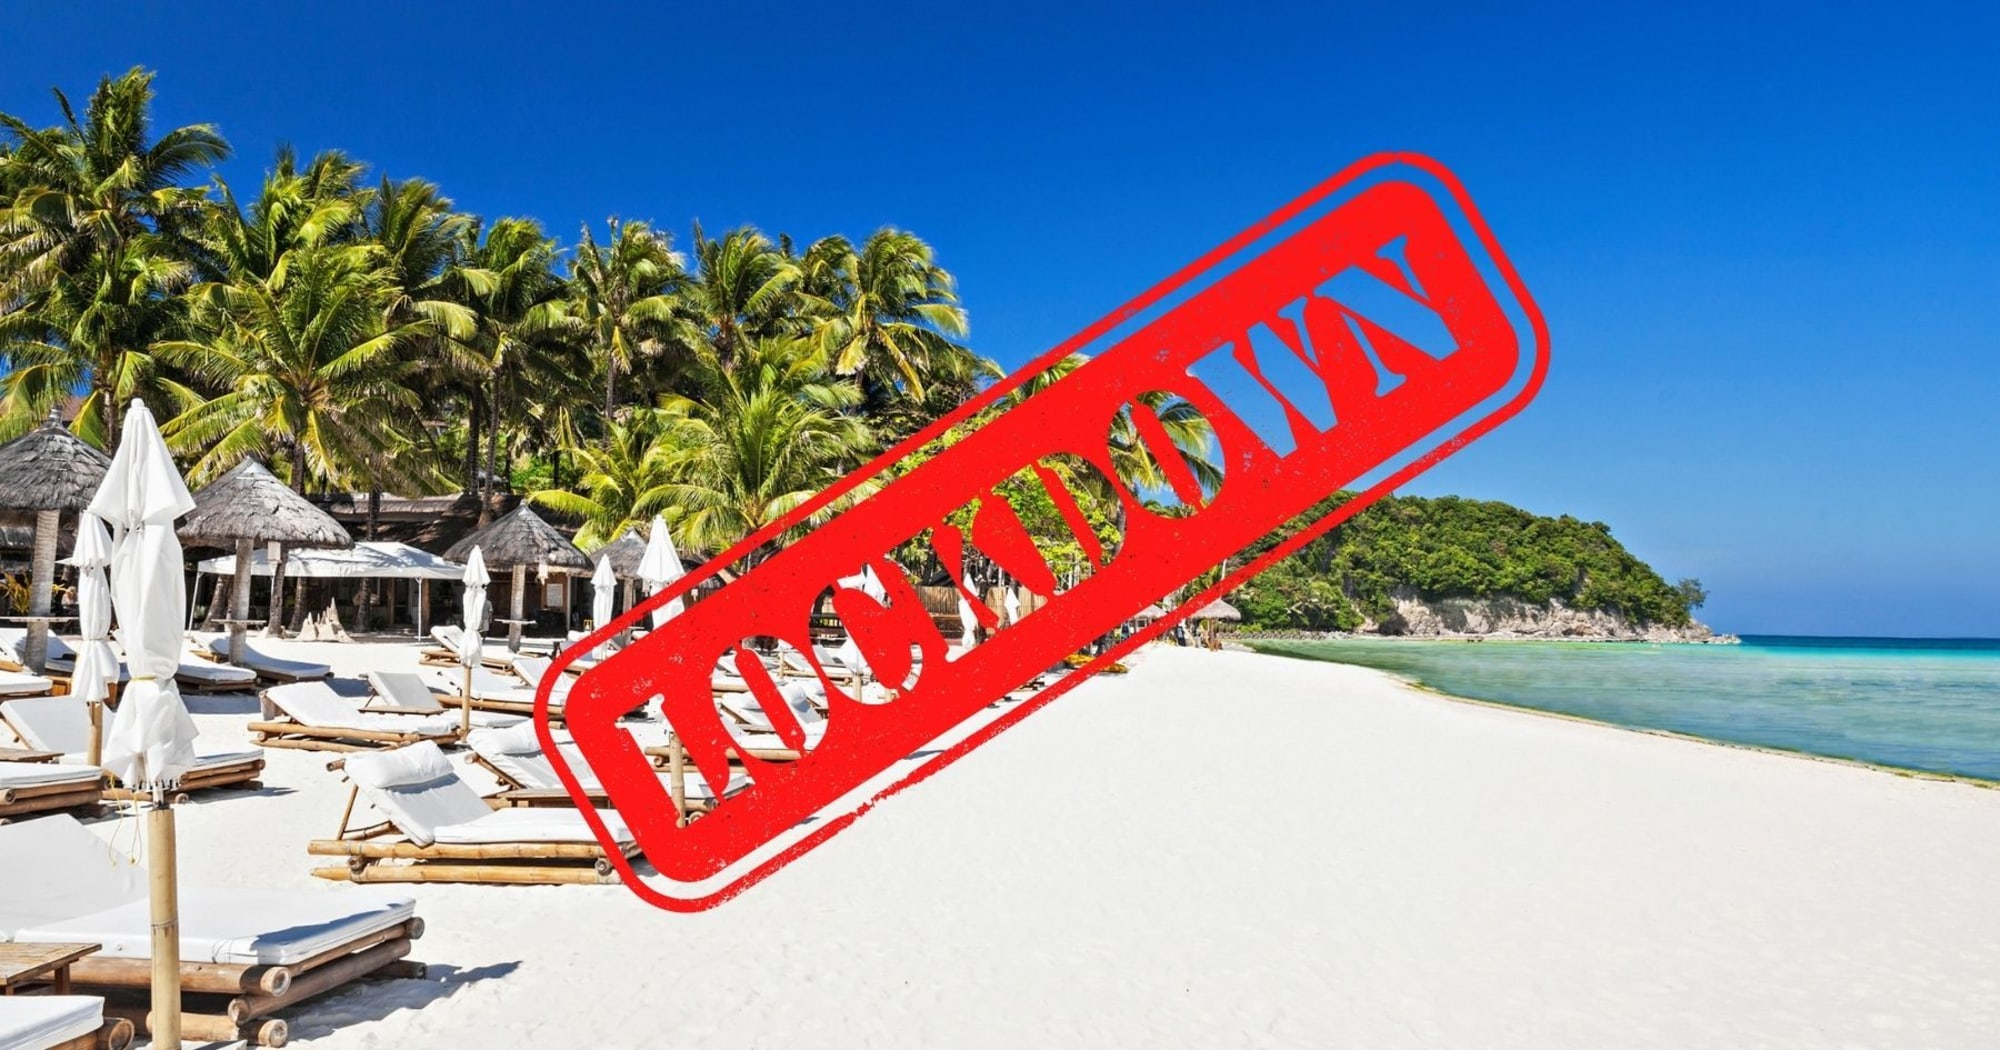 31 Hotels in Boracay are under a Surgical Lockdown starting today March 28